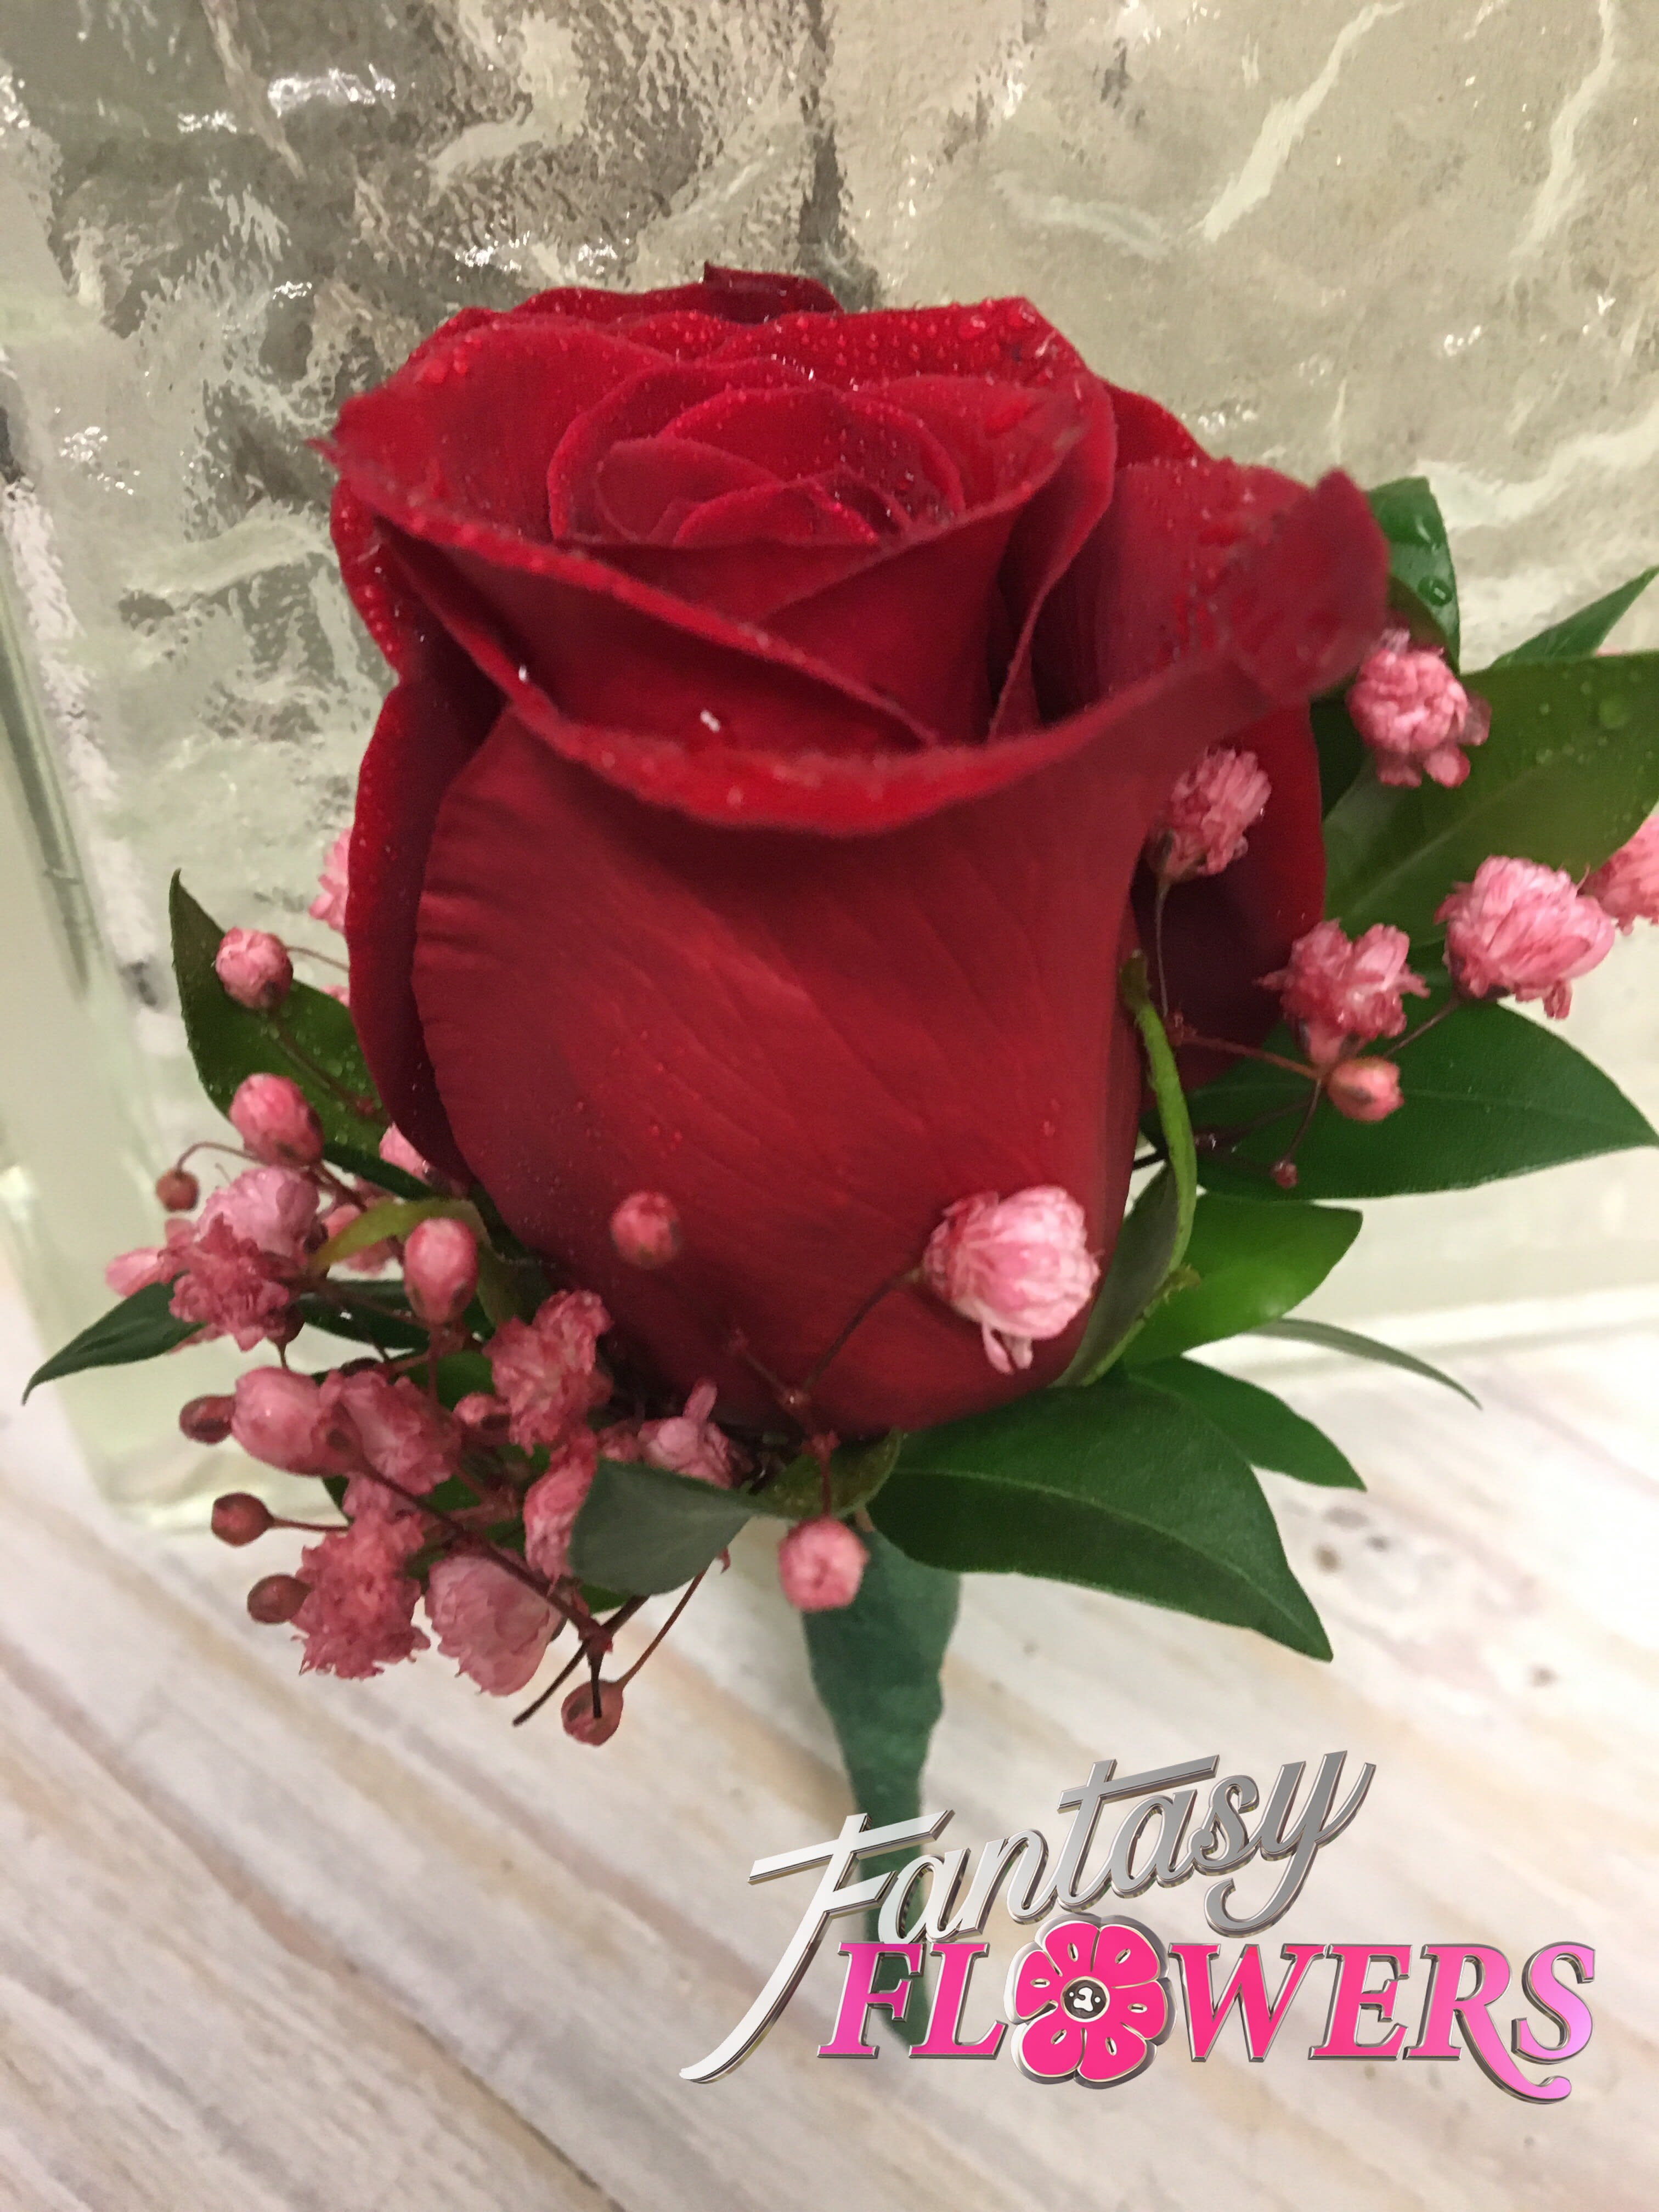 Simplicity Red boutonniere